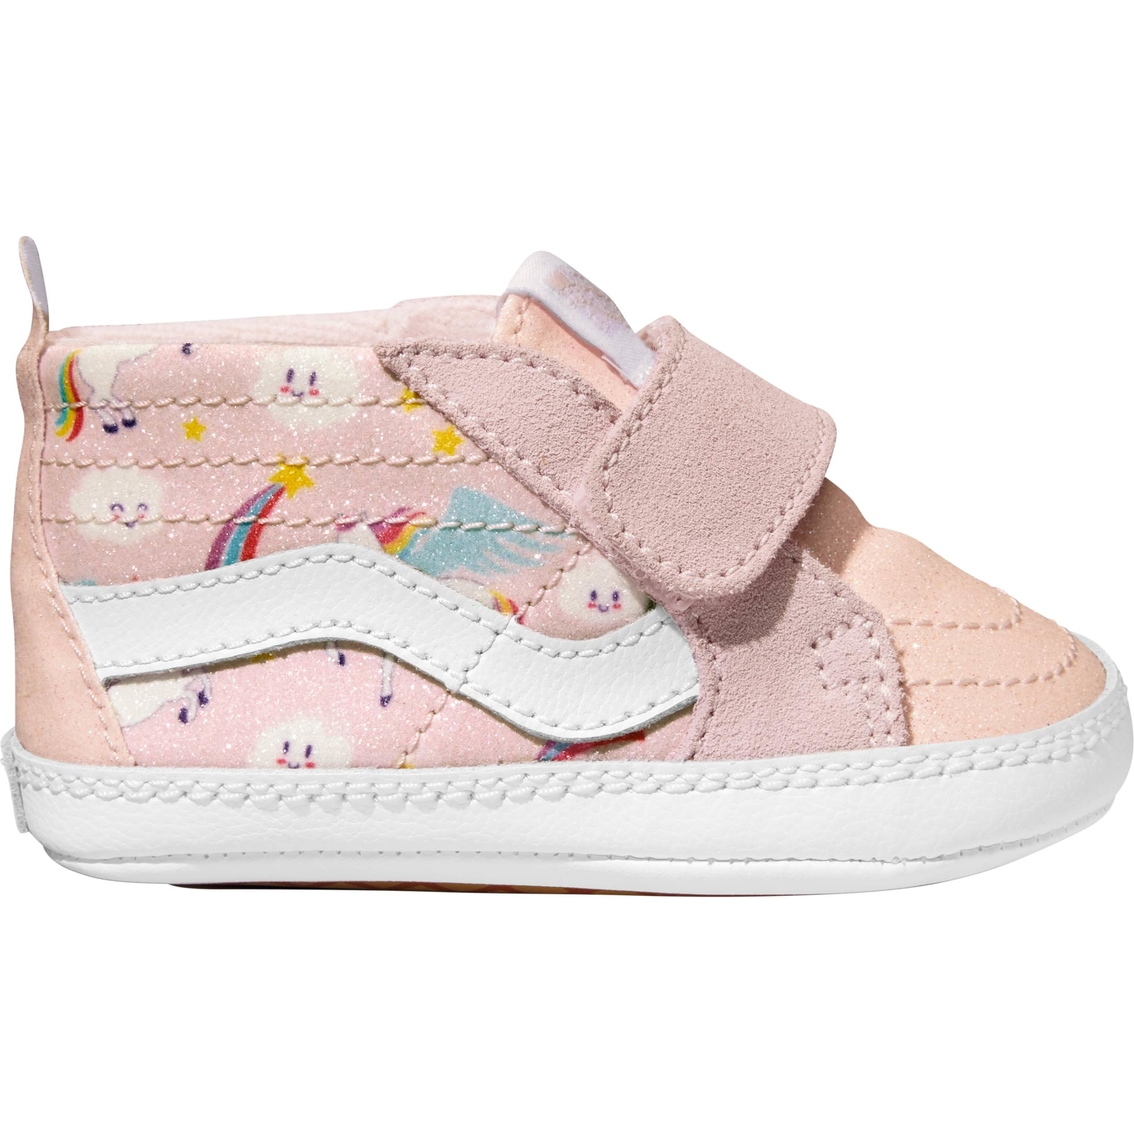 f254a7377c Vans Infant Girls Sk8-hi Glitter Pegasus Crib Shoes